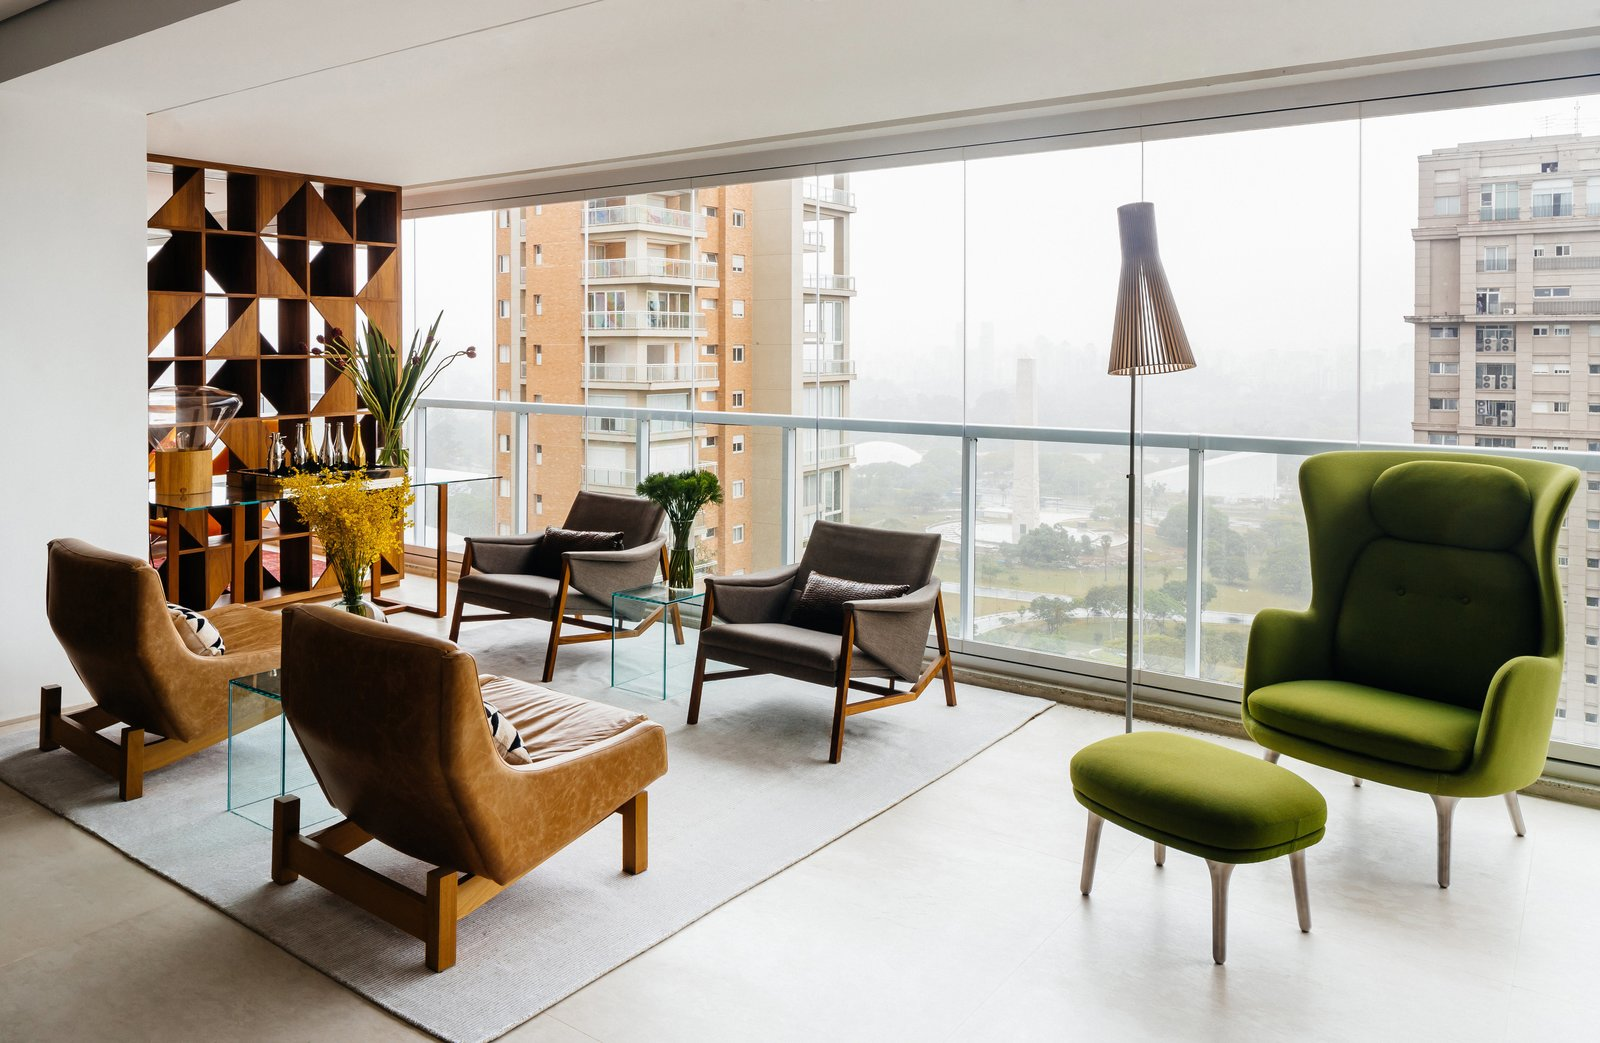 In an apartment overlooking São Paulo's Ibirapuera Park—completed in 1954 to commemorate the city's 400th anniversary—the furniture is as distinctive as the view. Architect Flavio Castro of FCstudio worked closely with the residents to update and outfit the home, which is appointed with a mix of contemporary and Brazilian modern classics. A pair of Sérgio Rodrigues's Paraty armchairs (in foreground)—designed for Brasilia's Itamaraty Palace in 1963—face a duo of Jader Almeida's Isa armchairs in the living area. The green Ro lounge and ottoman are by Jaime Hayon for Fritz Hansen.  Photo 1 of 9 in Overlooking a Niemeyer Masterpiece, This Flat is Filled with Brazilian Modern Gems